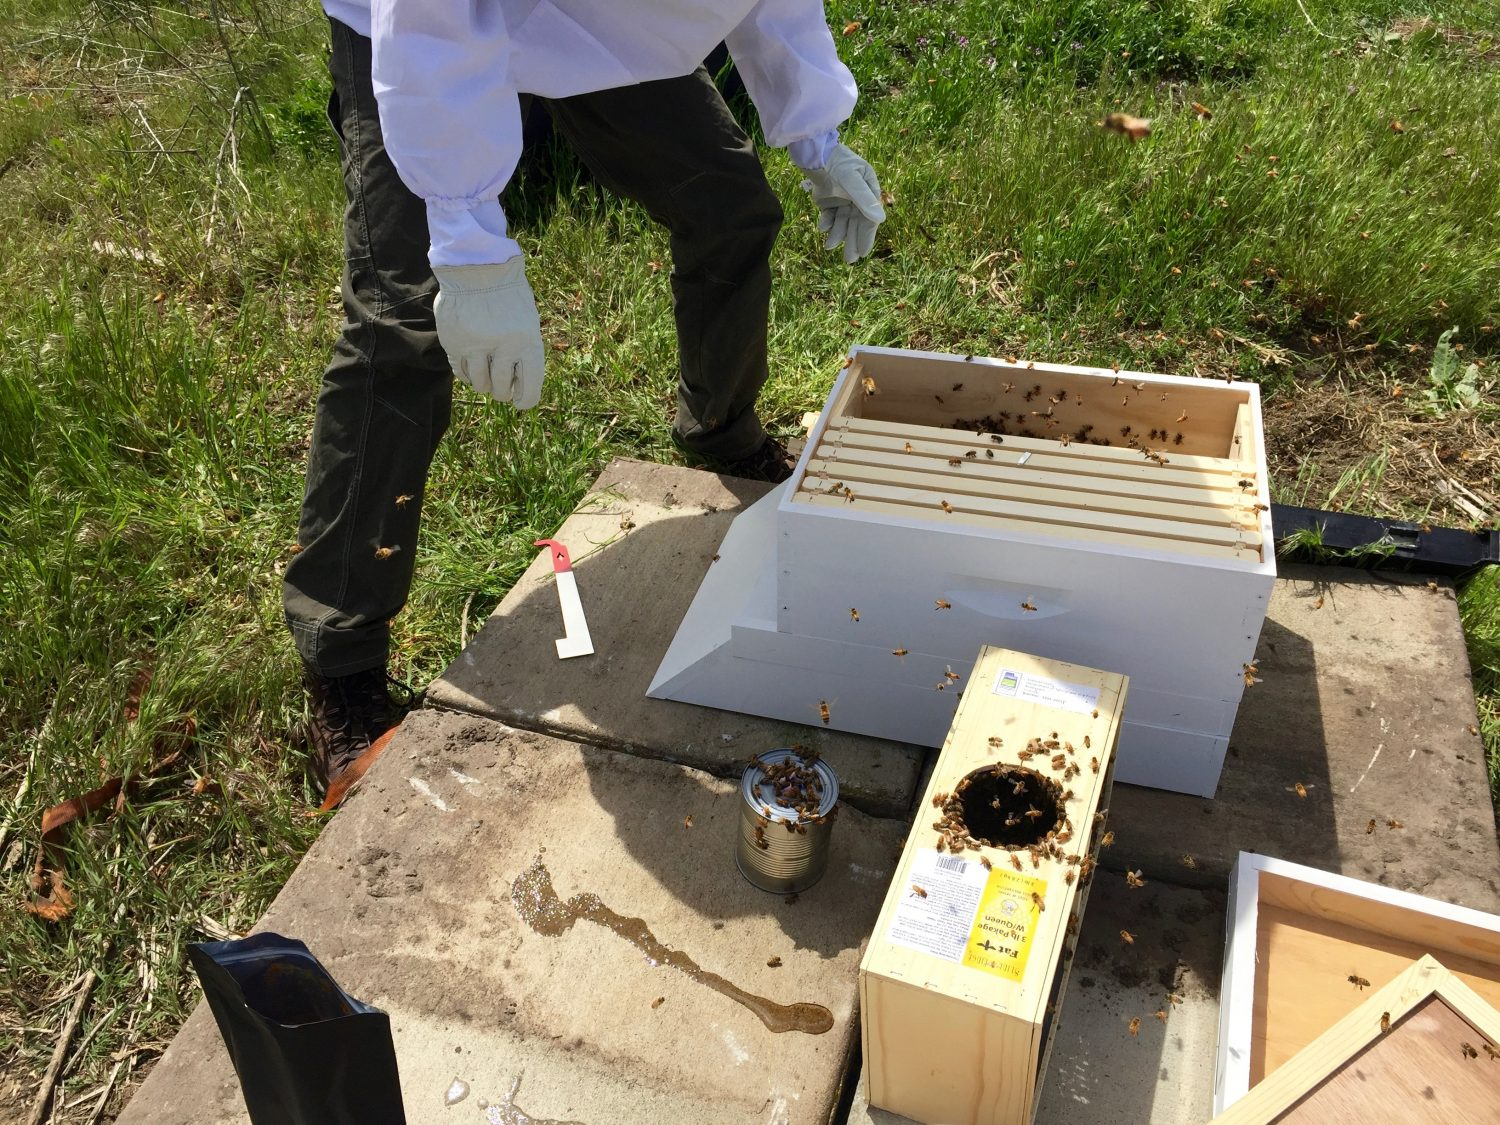 Getting Bees Part 2 – Installation